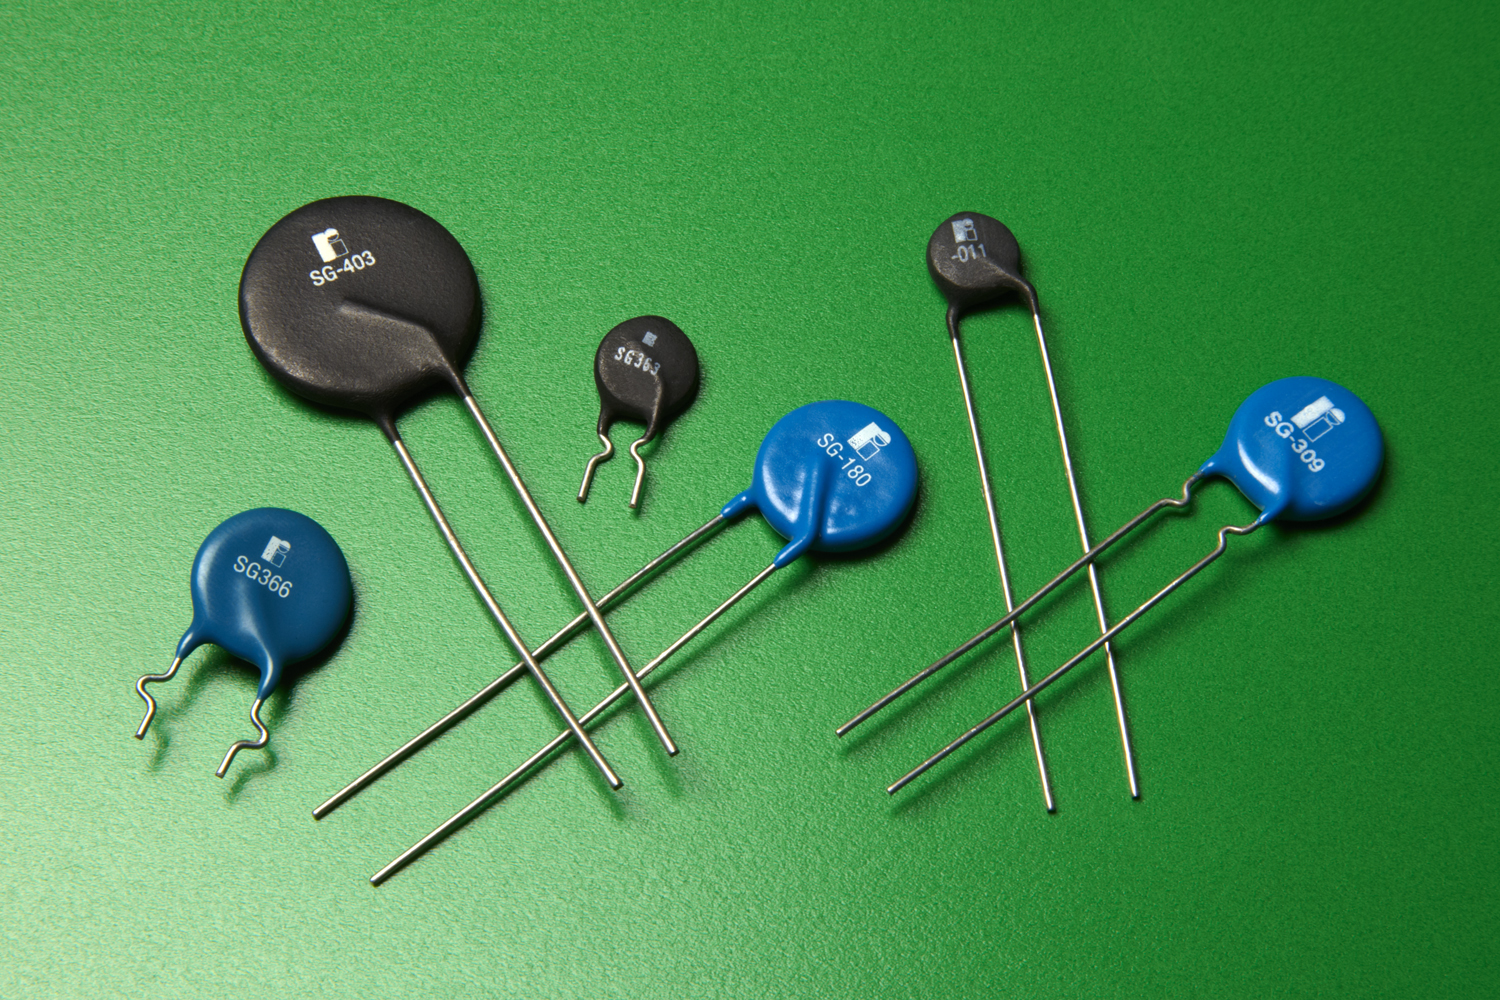 Surge Gard Inrush Current Limiting Ntc Thermistors From Api Circuit Technologies Reduce Failures